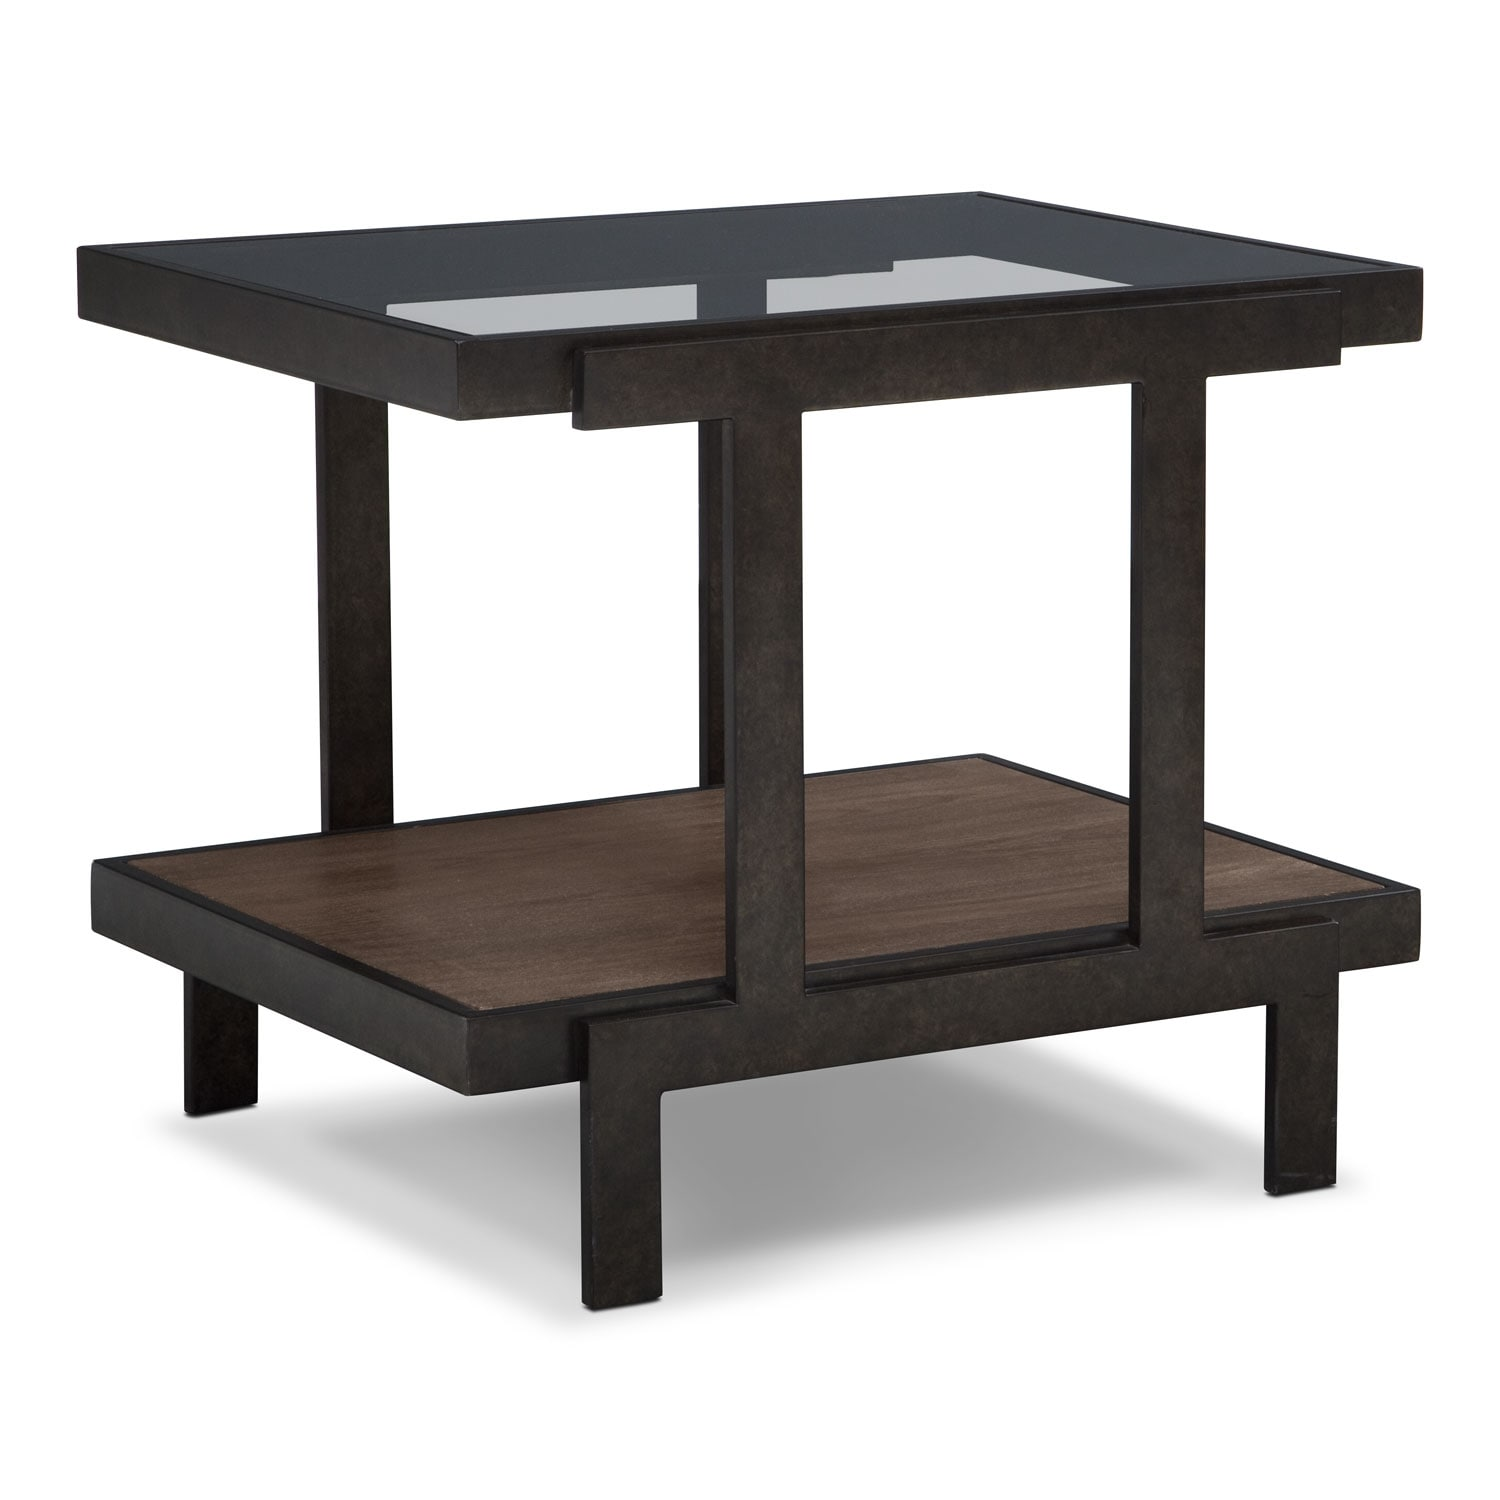 Accent and Occasional Furniture - Beasley End Table - Espresso